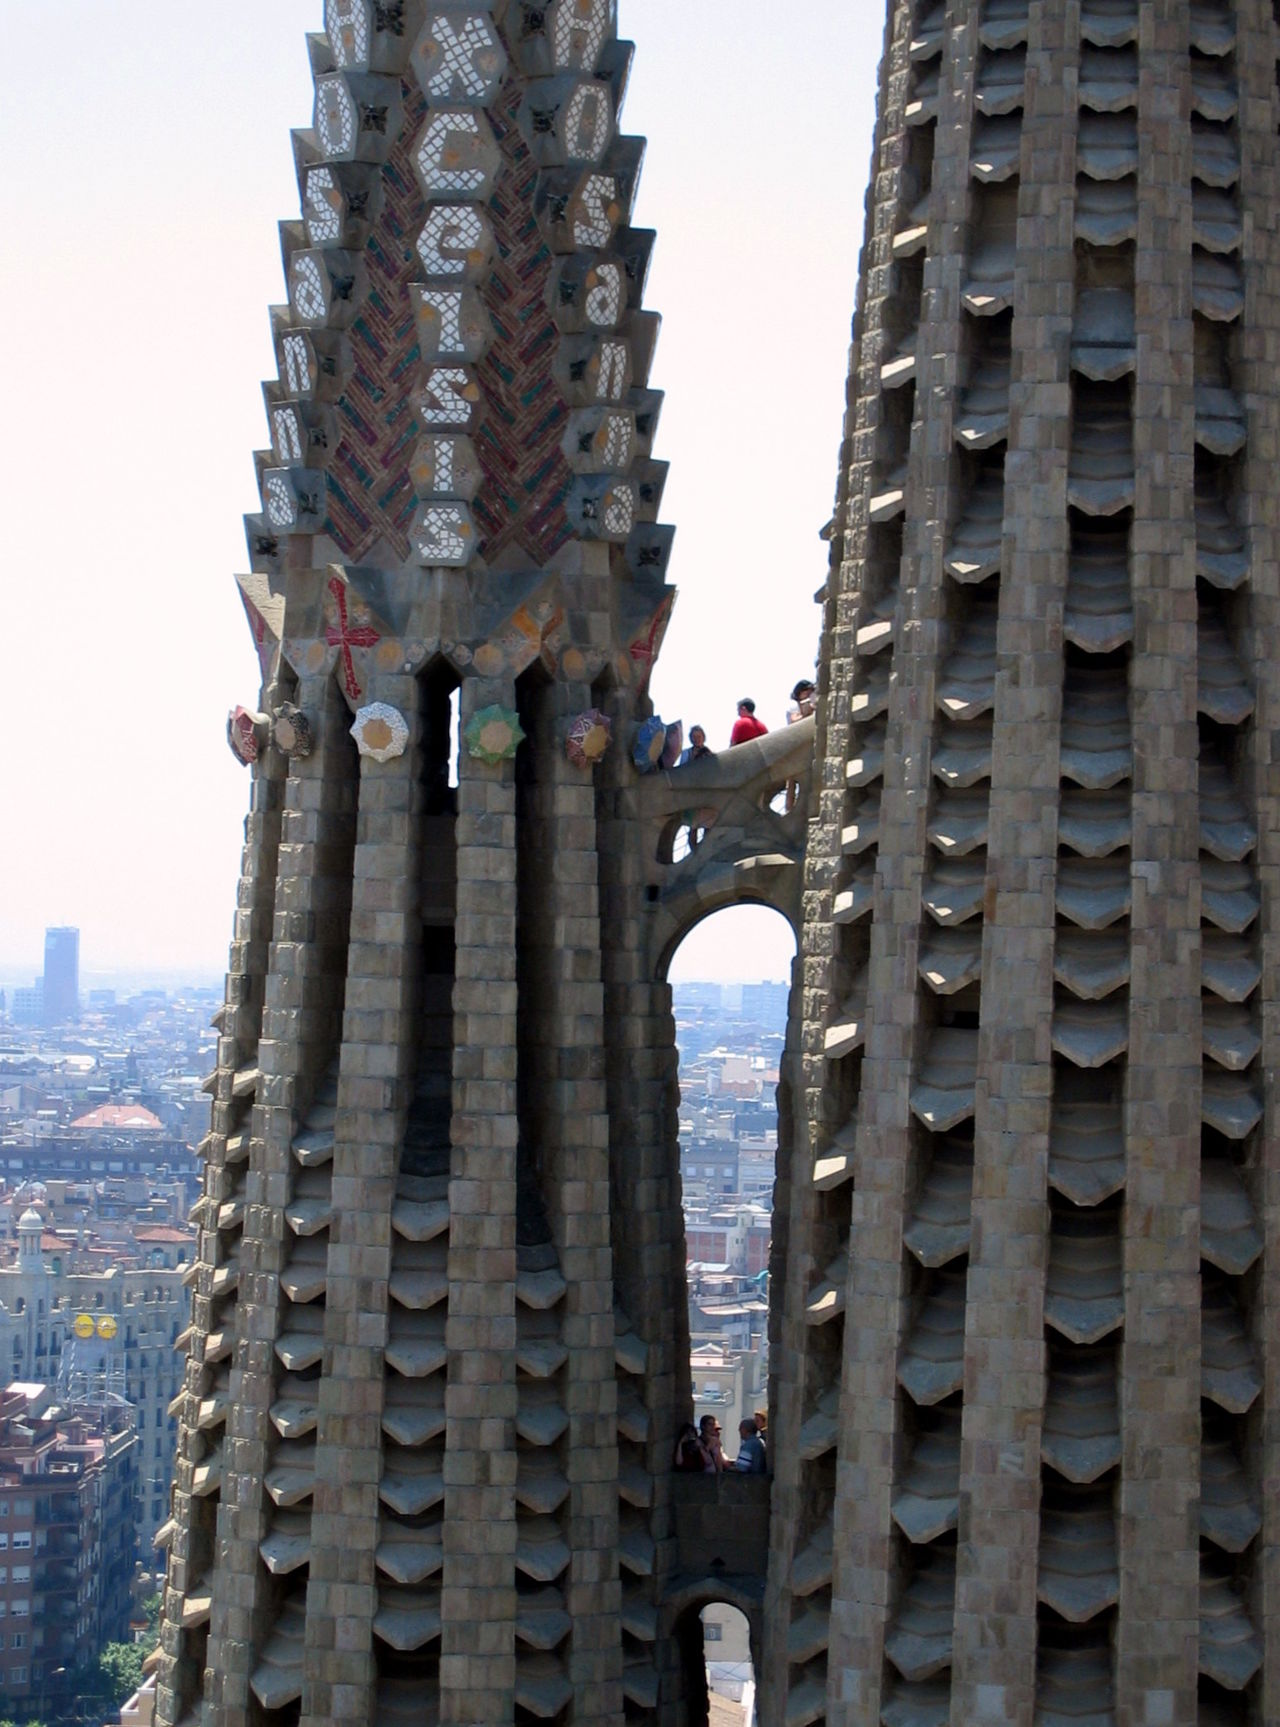 Architecture Barcelona Building Exterior Built Structure City Clear Sky Day Gaudi Modern No People Outdoors S Sky Skyscraper Travel Destinations